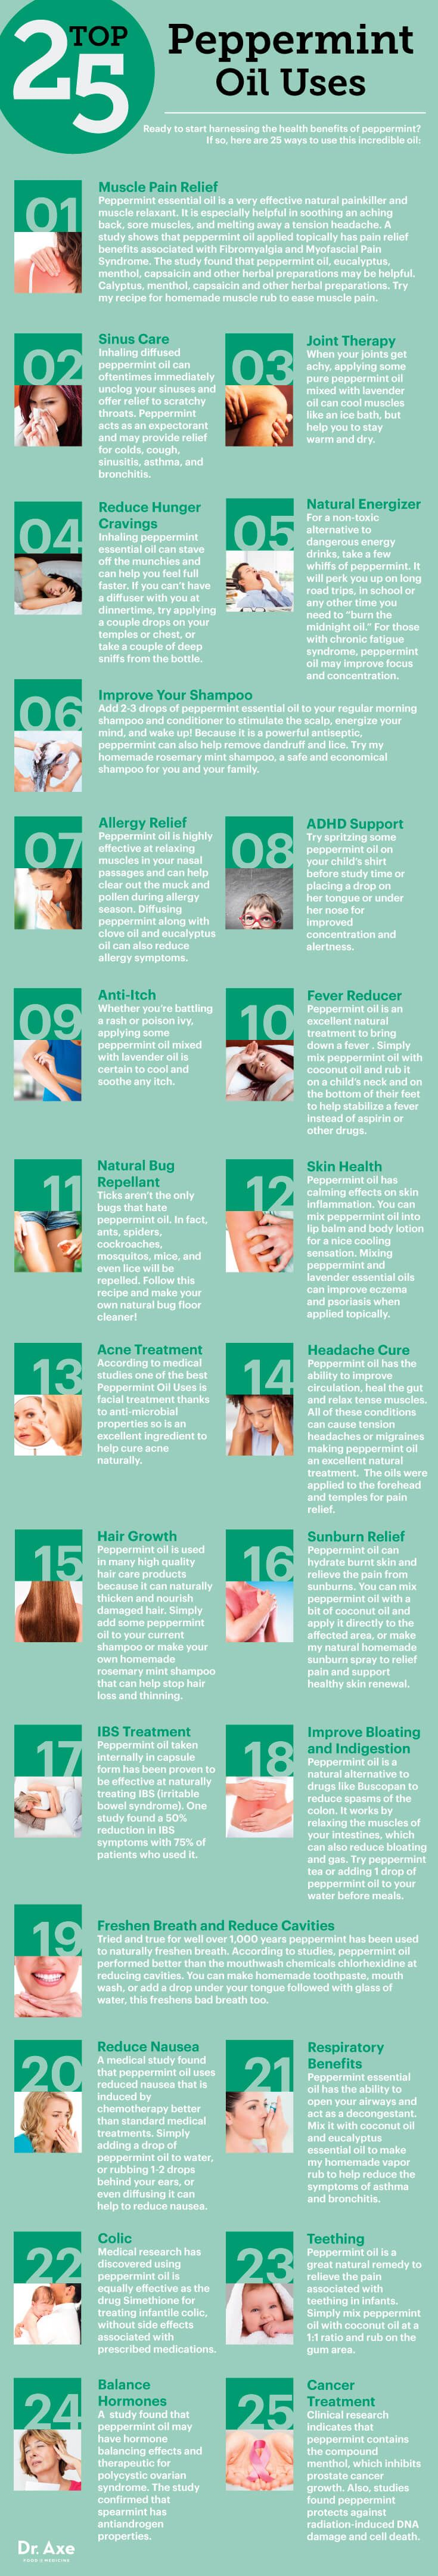 25 benefits and uses for Peppermint Oil infographic